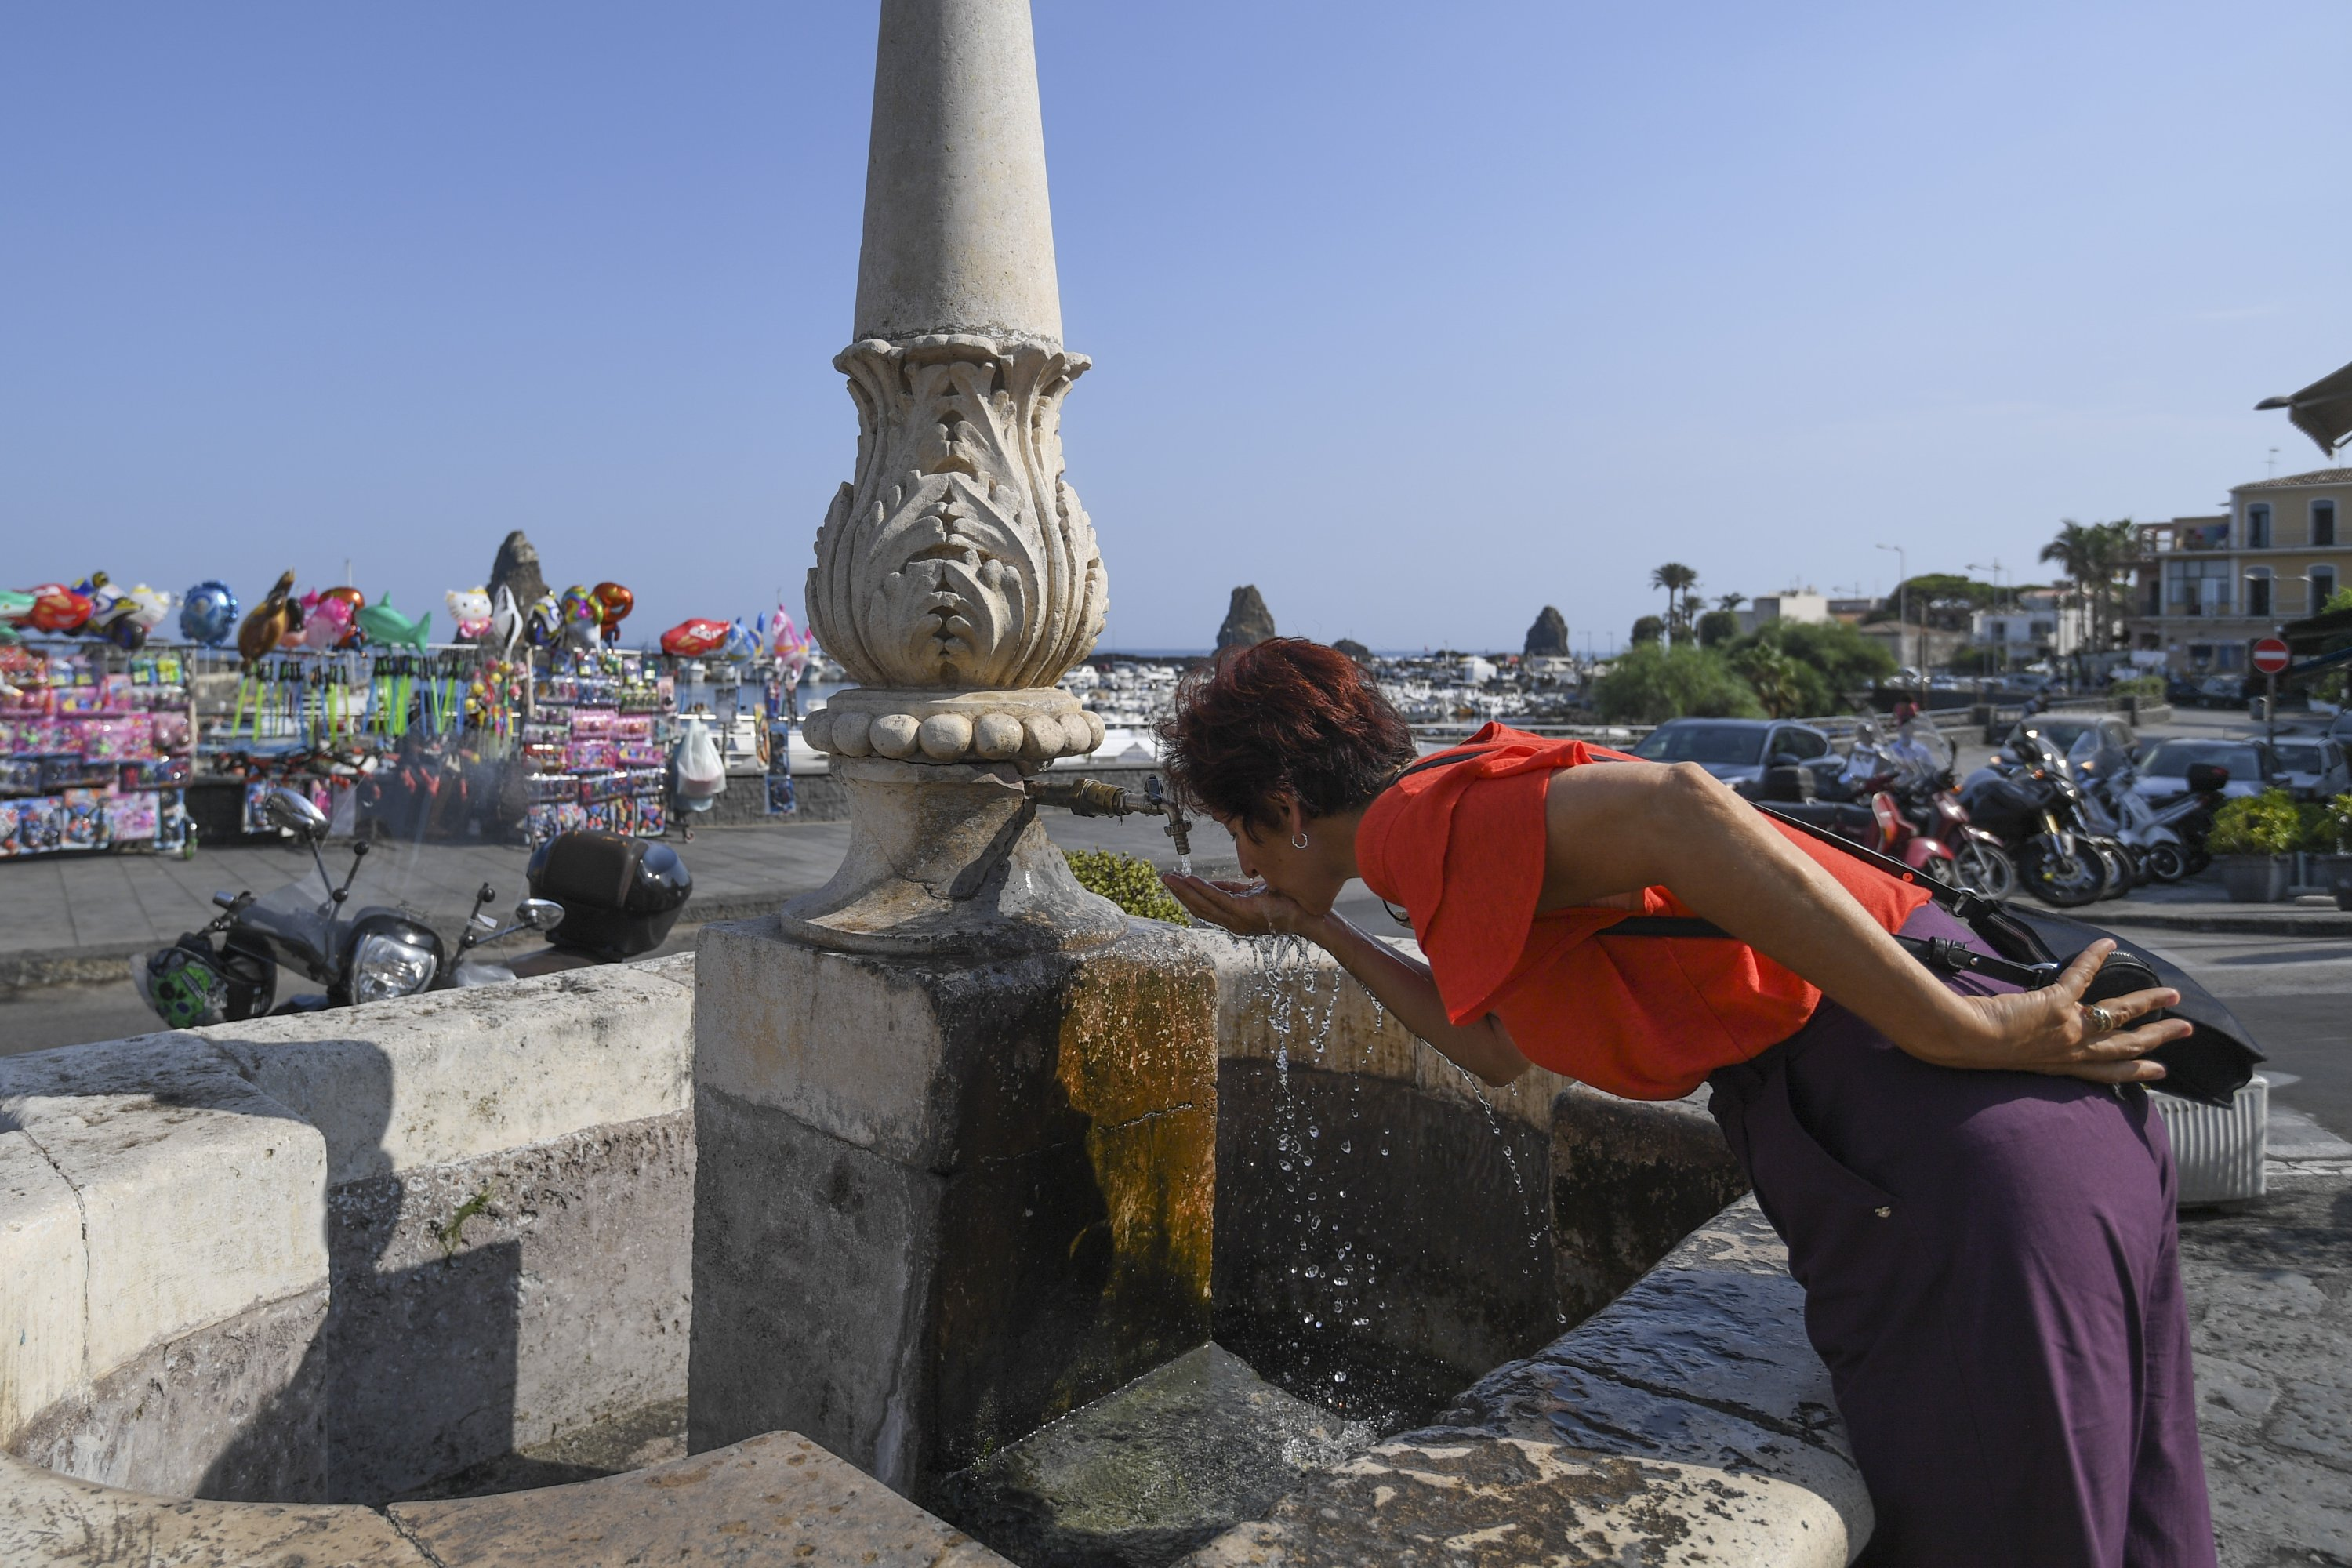 A woman refreshes herself at a fountain in Aci Trezza, near Catania, Sicily, Italy, Aug. 13, 2021. (AP Photo)